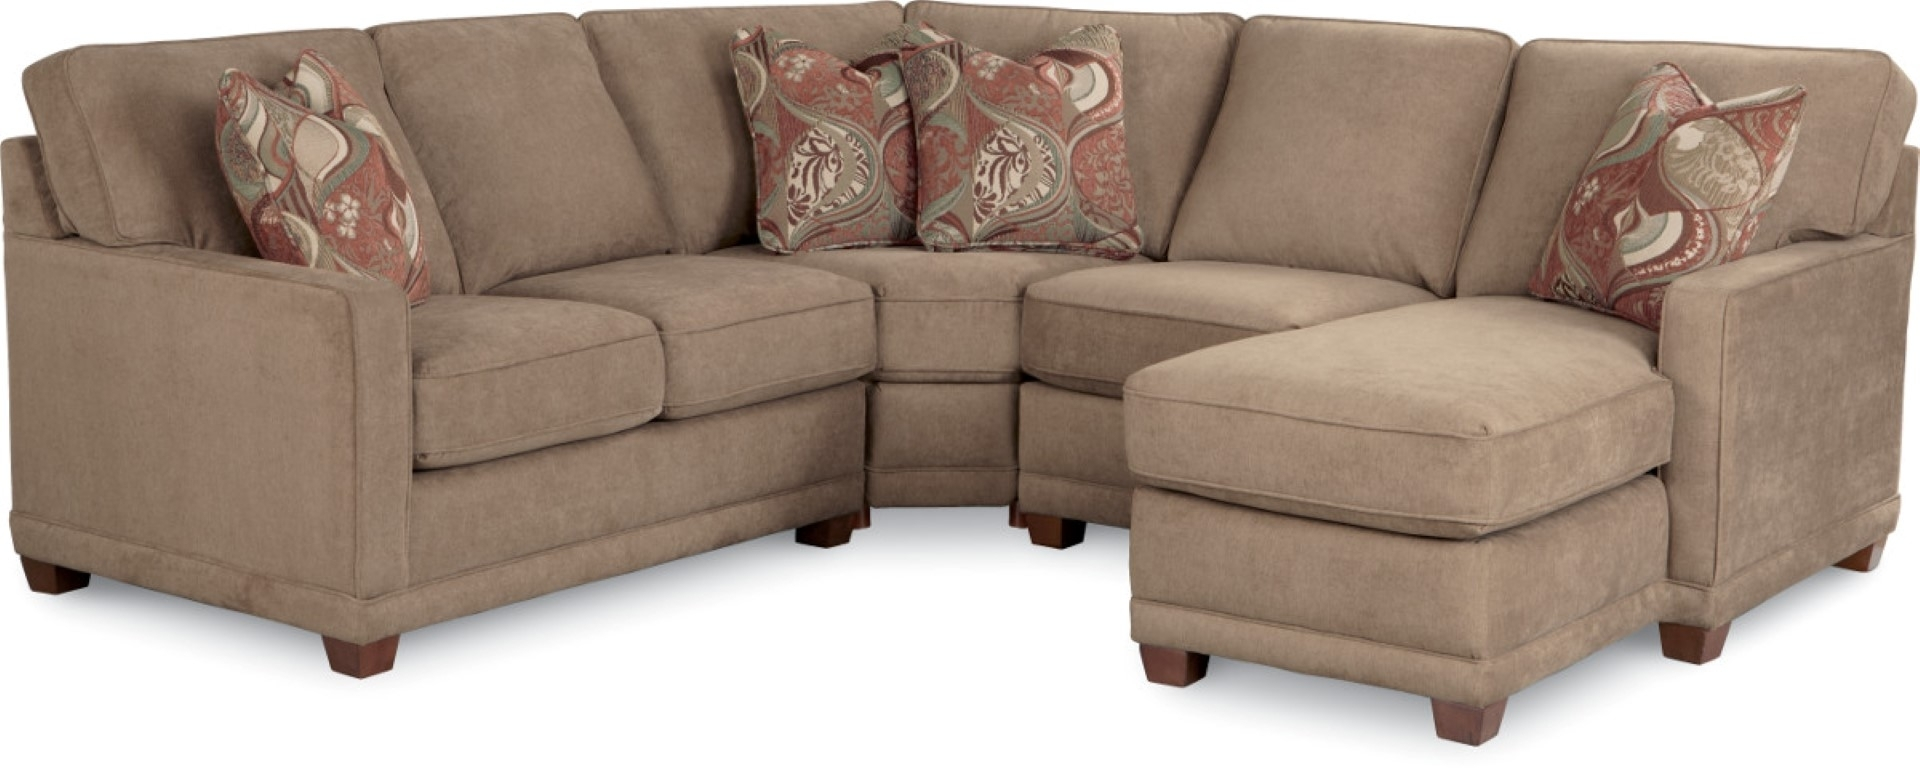 Kennedy Sectional Sofa – Town & Country Furniture Within Sectional Sofas At Bad Boy (Gallery 13 of 15)